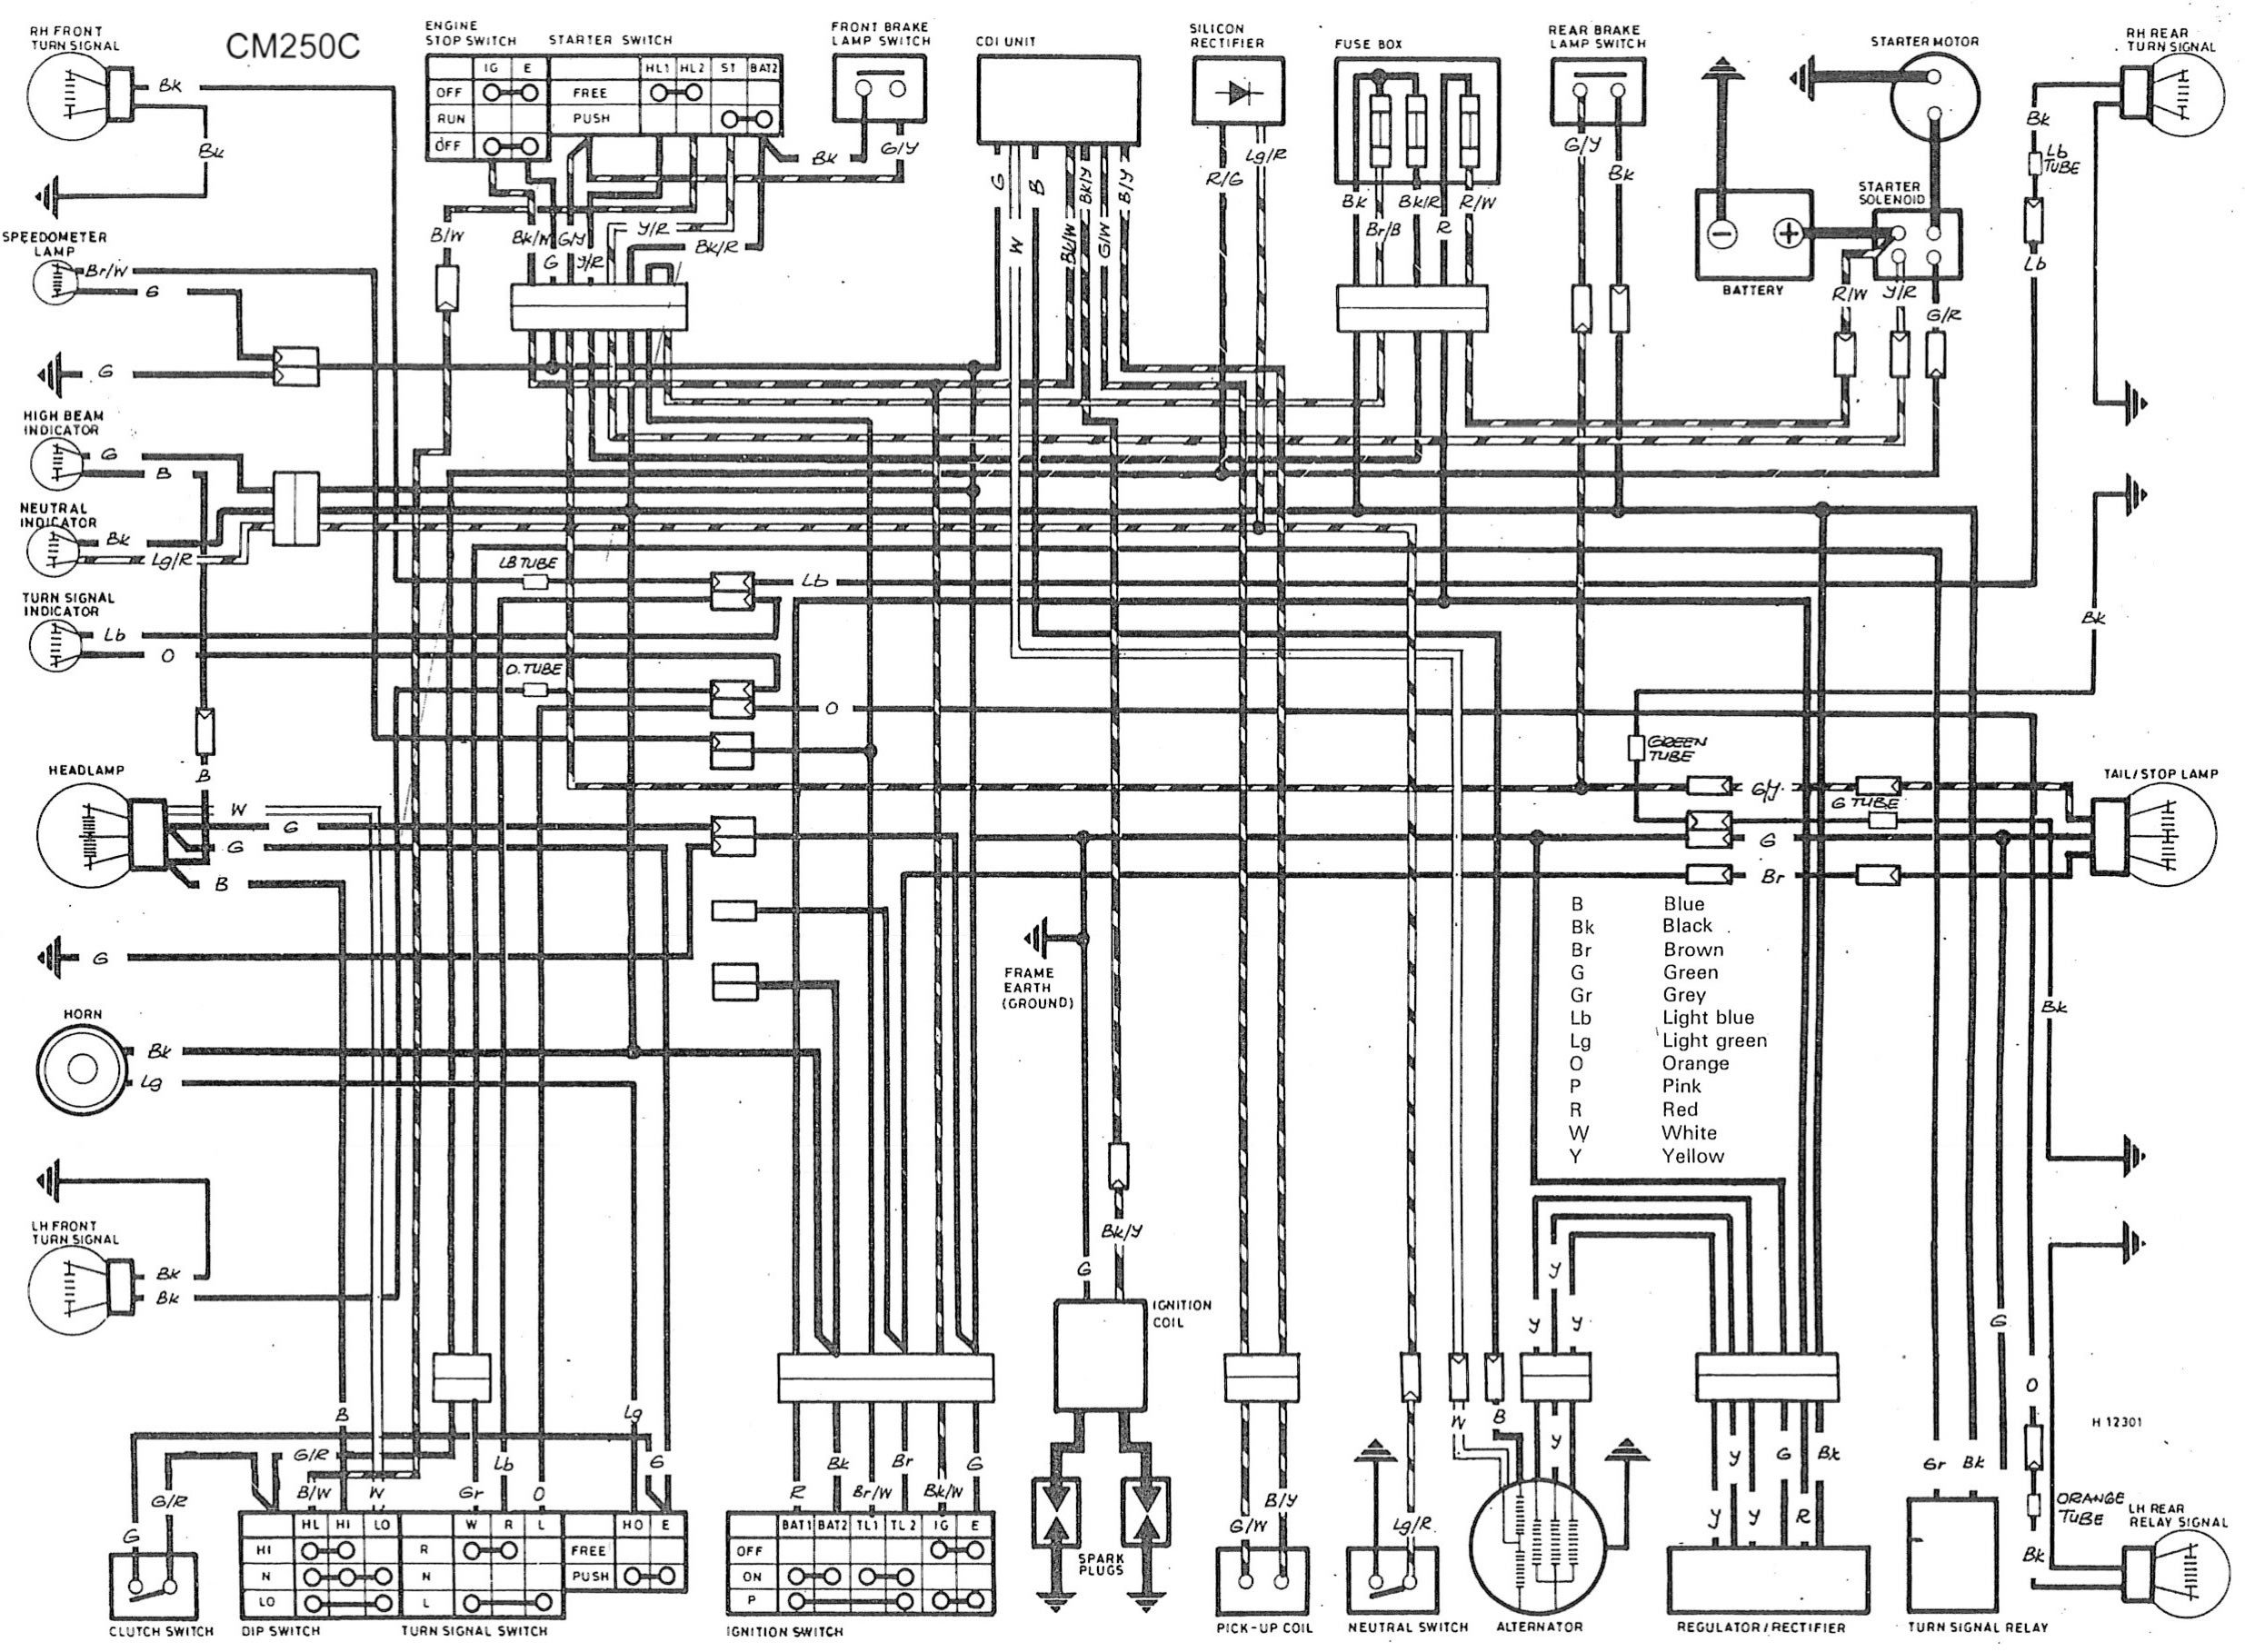 wiring diagram cm lodestar wiring diagram rh on30 baketastic de cm flatbed wiring diagram honda cm 200 wiring diagram